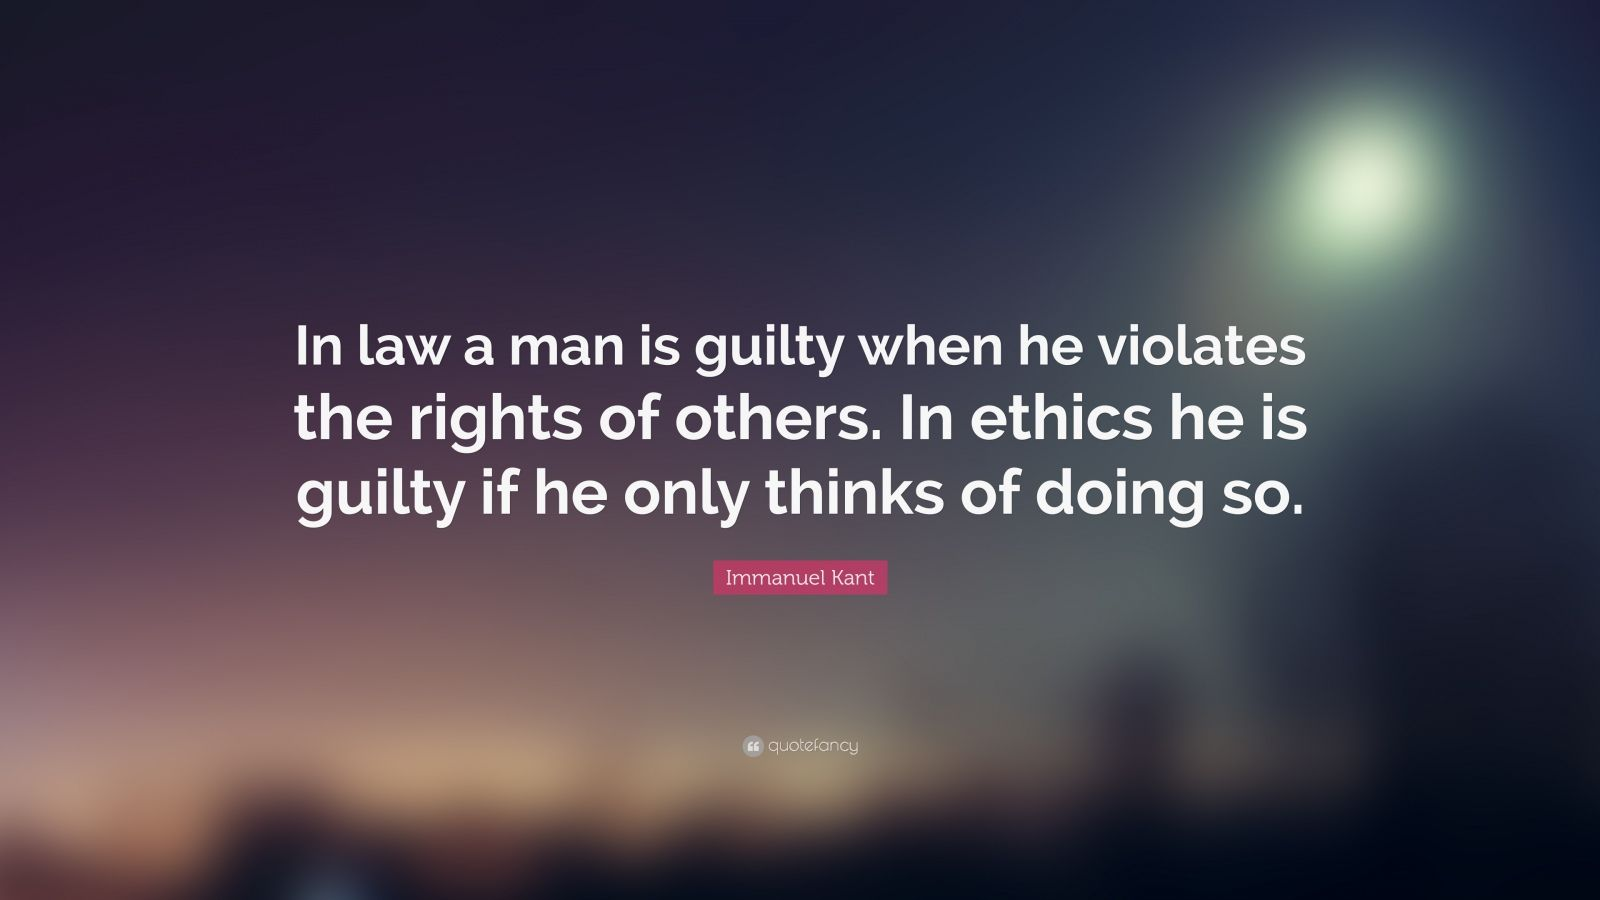 """Immanuel Kant Quote: """"In law a man is guilty when he violates the rights of others. In ethics he is guilty if he only thinks of doing so."""""""